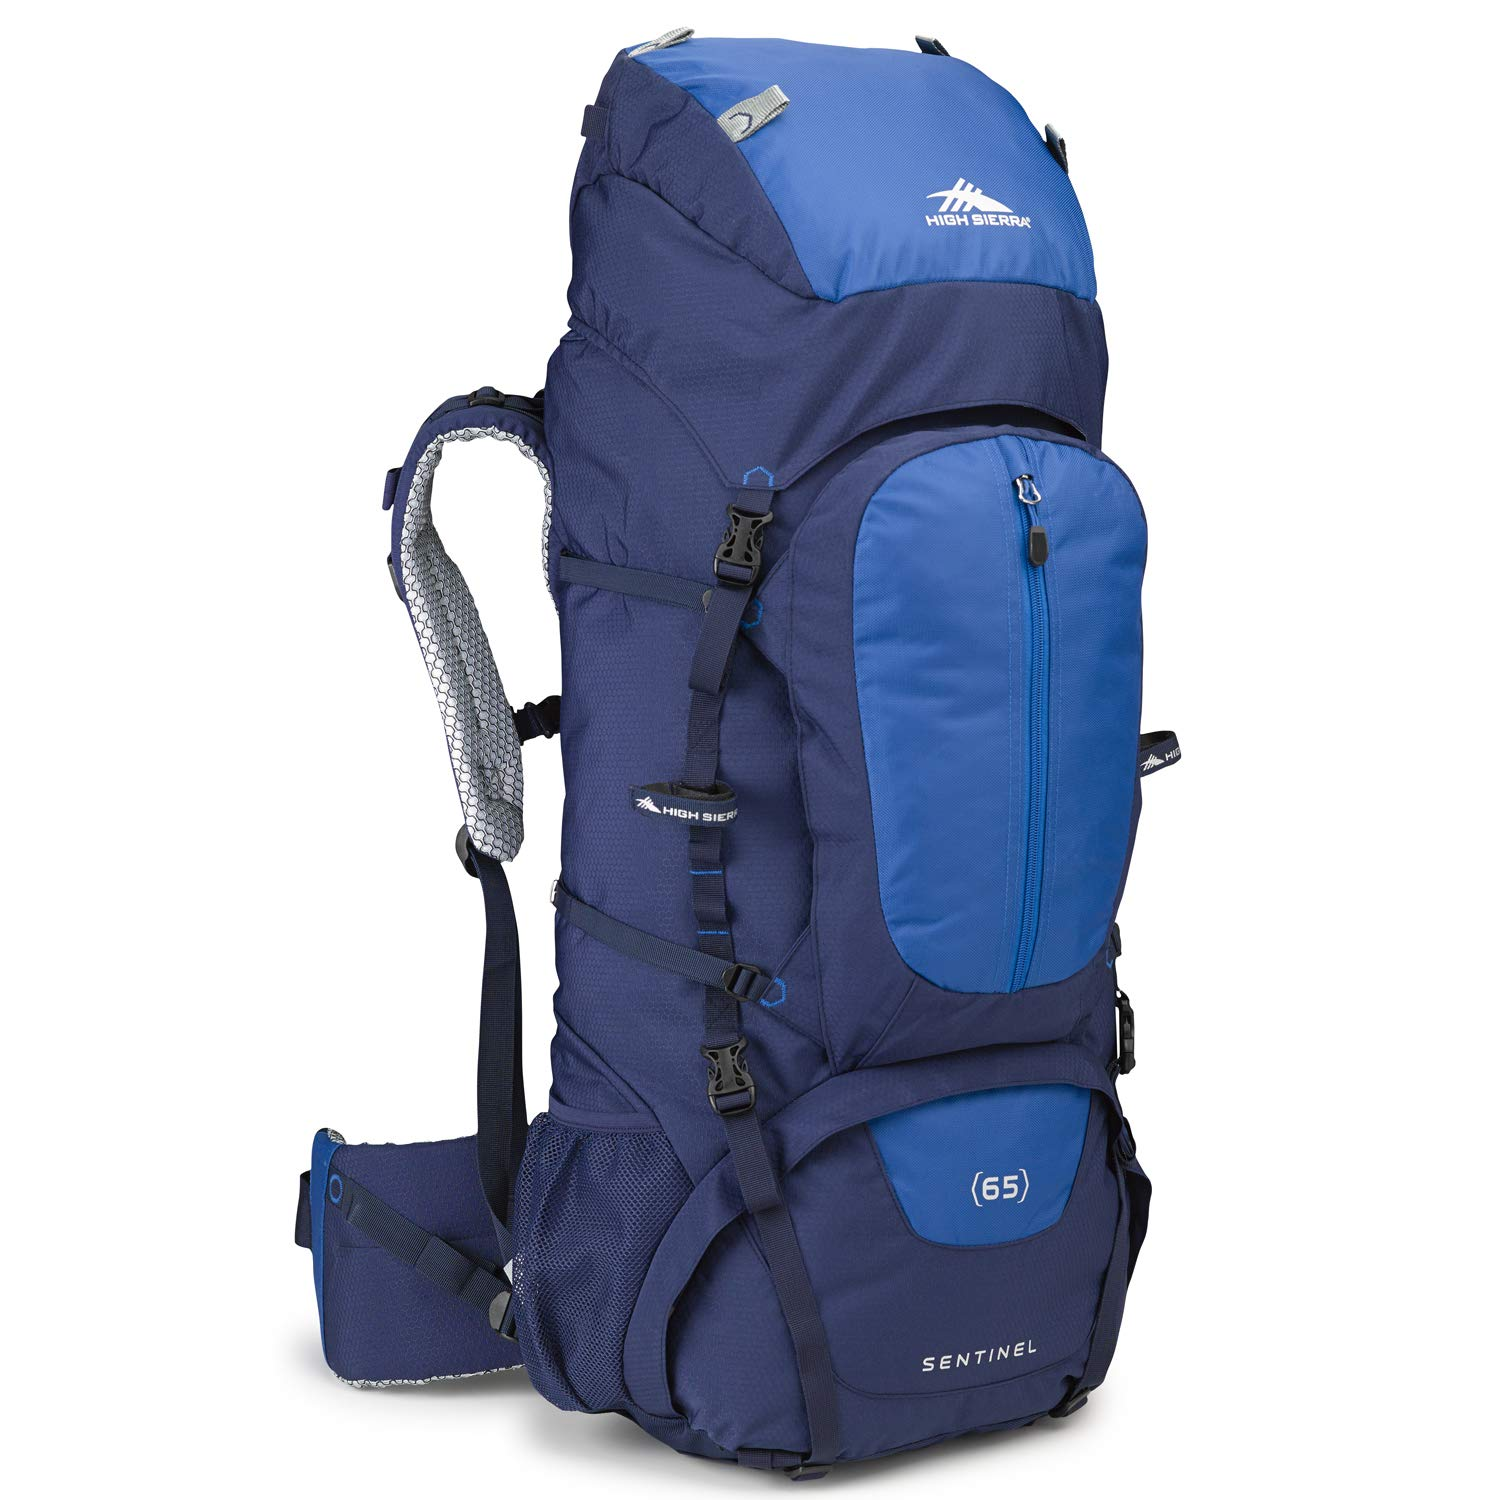 with Rain Fly High-Performance Pack for Backpacking High Sierra Sentinel 65L Top LoadBackpack Pack Camping Hiking